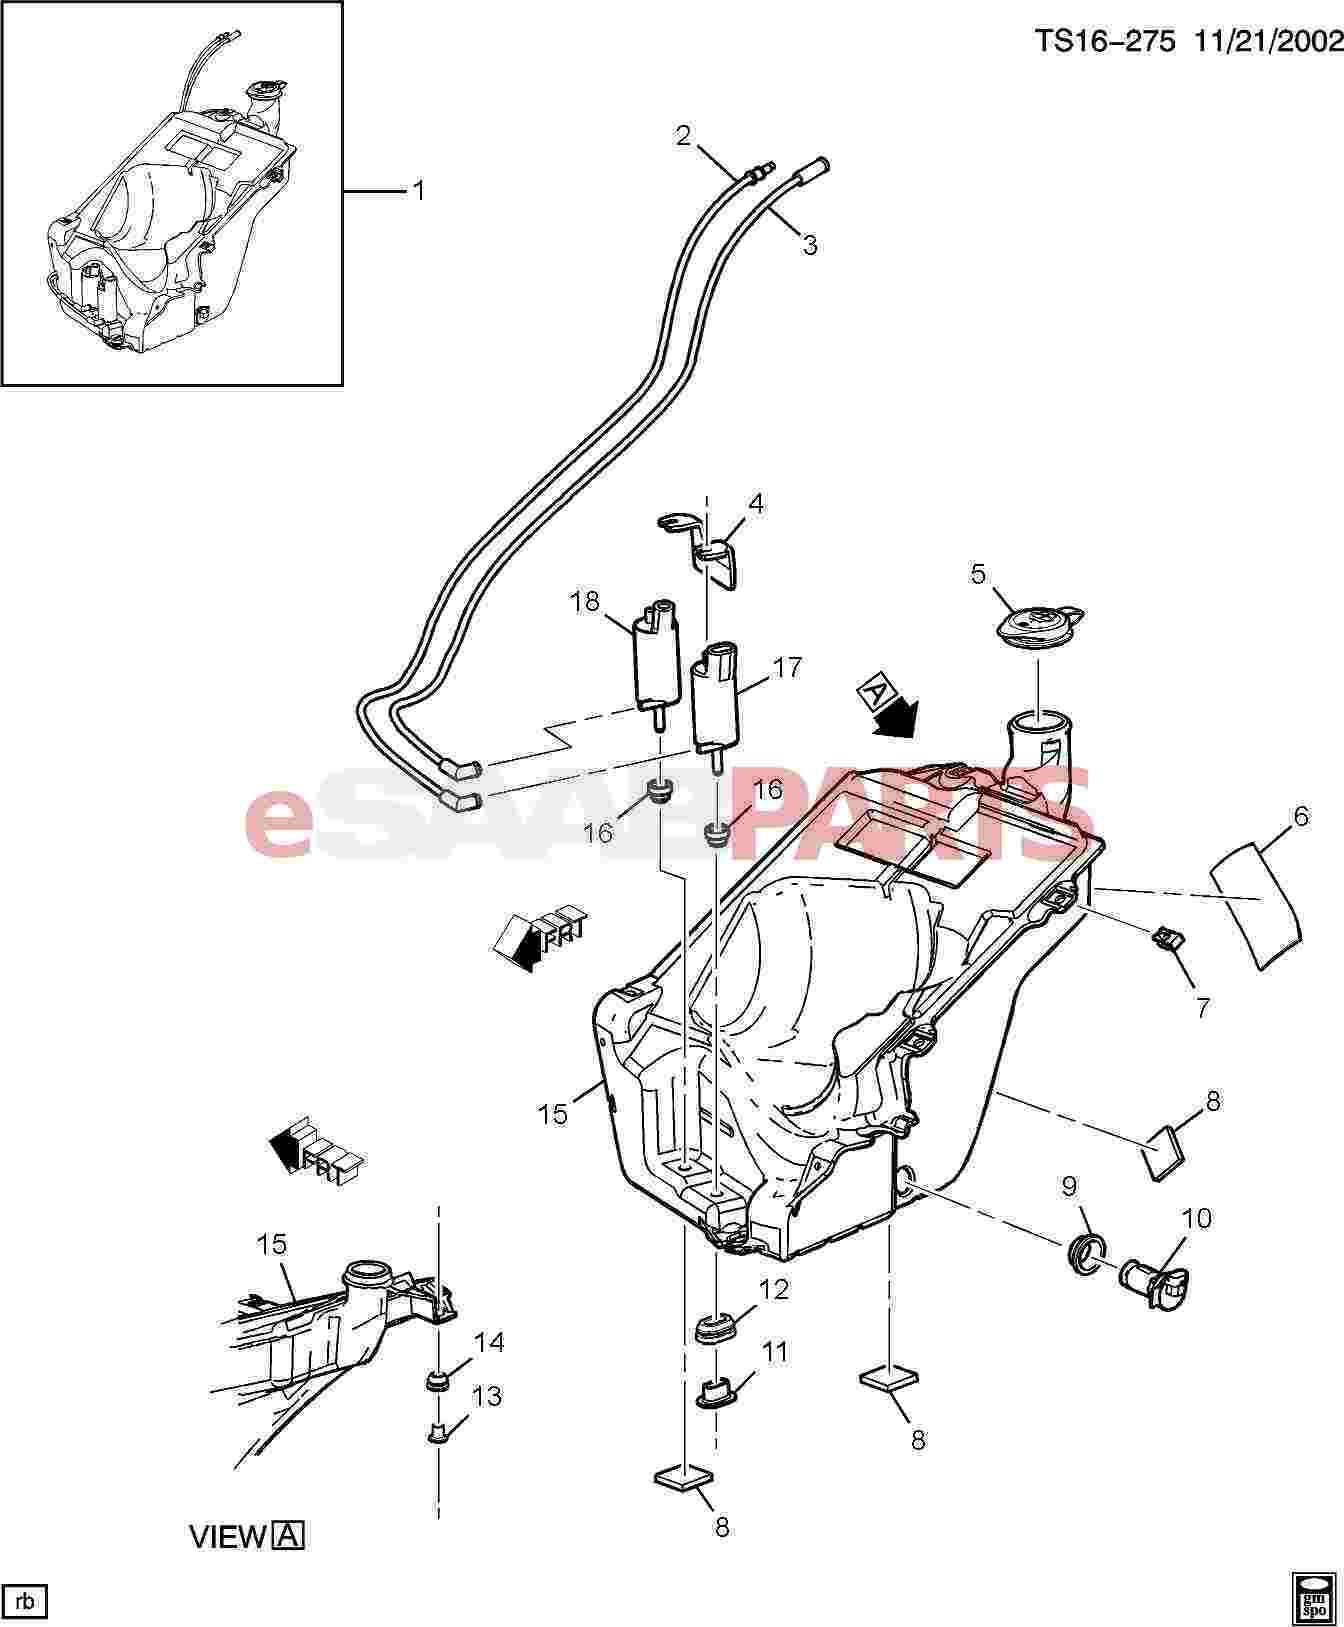 Chevy 3 7 5 Cylinder Engine Diagram besides Serpentine Belt How To Remove Or Replace Acura Tl moreover Silverado Oxygen Sensor Location in addition Saab Timing Chain Replacement 2007 furthermore Diagram Of Maserati Quattroporte Engine. on saab water pump problems